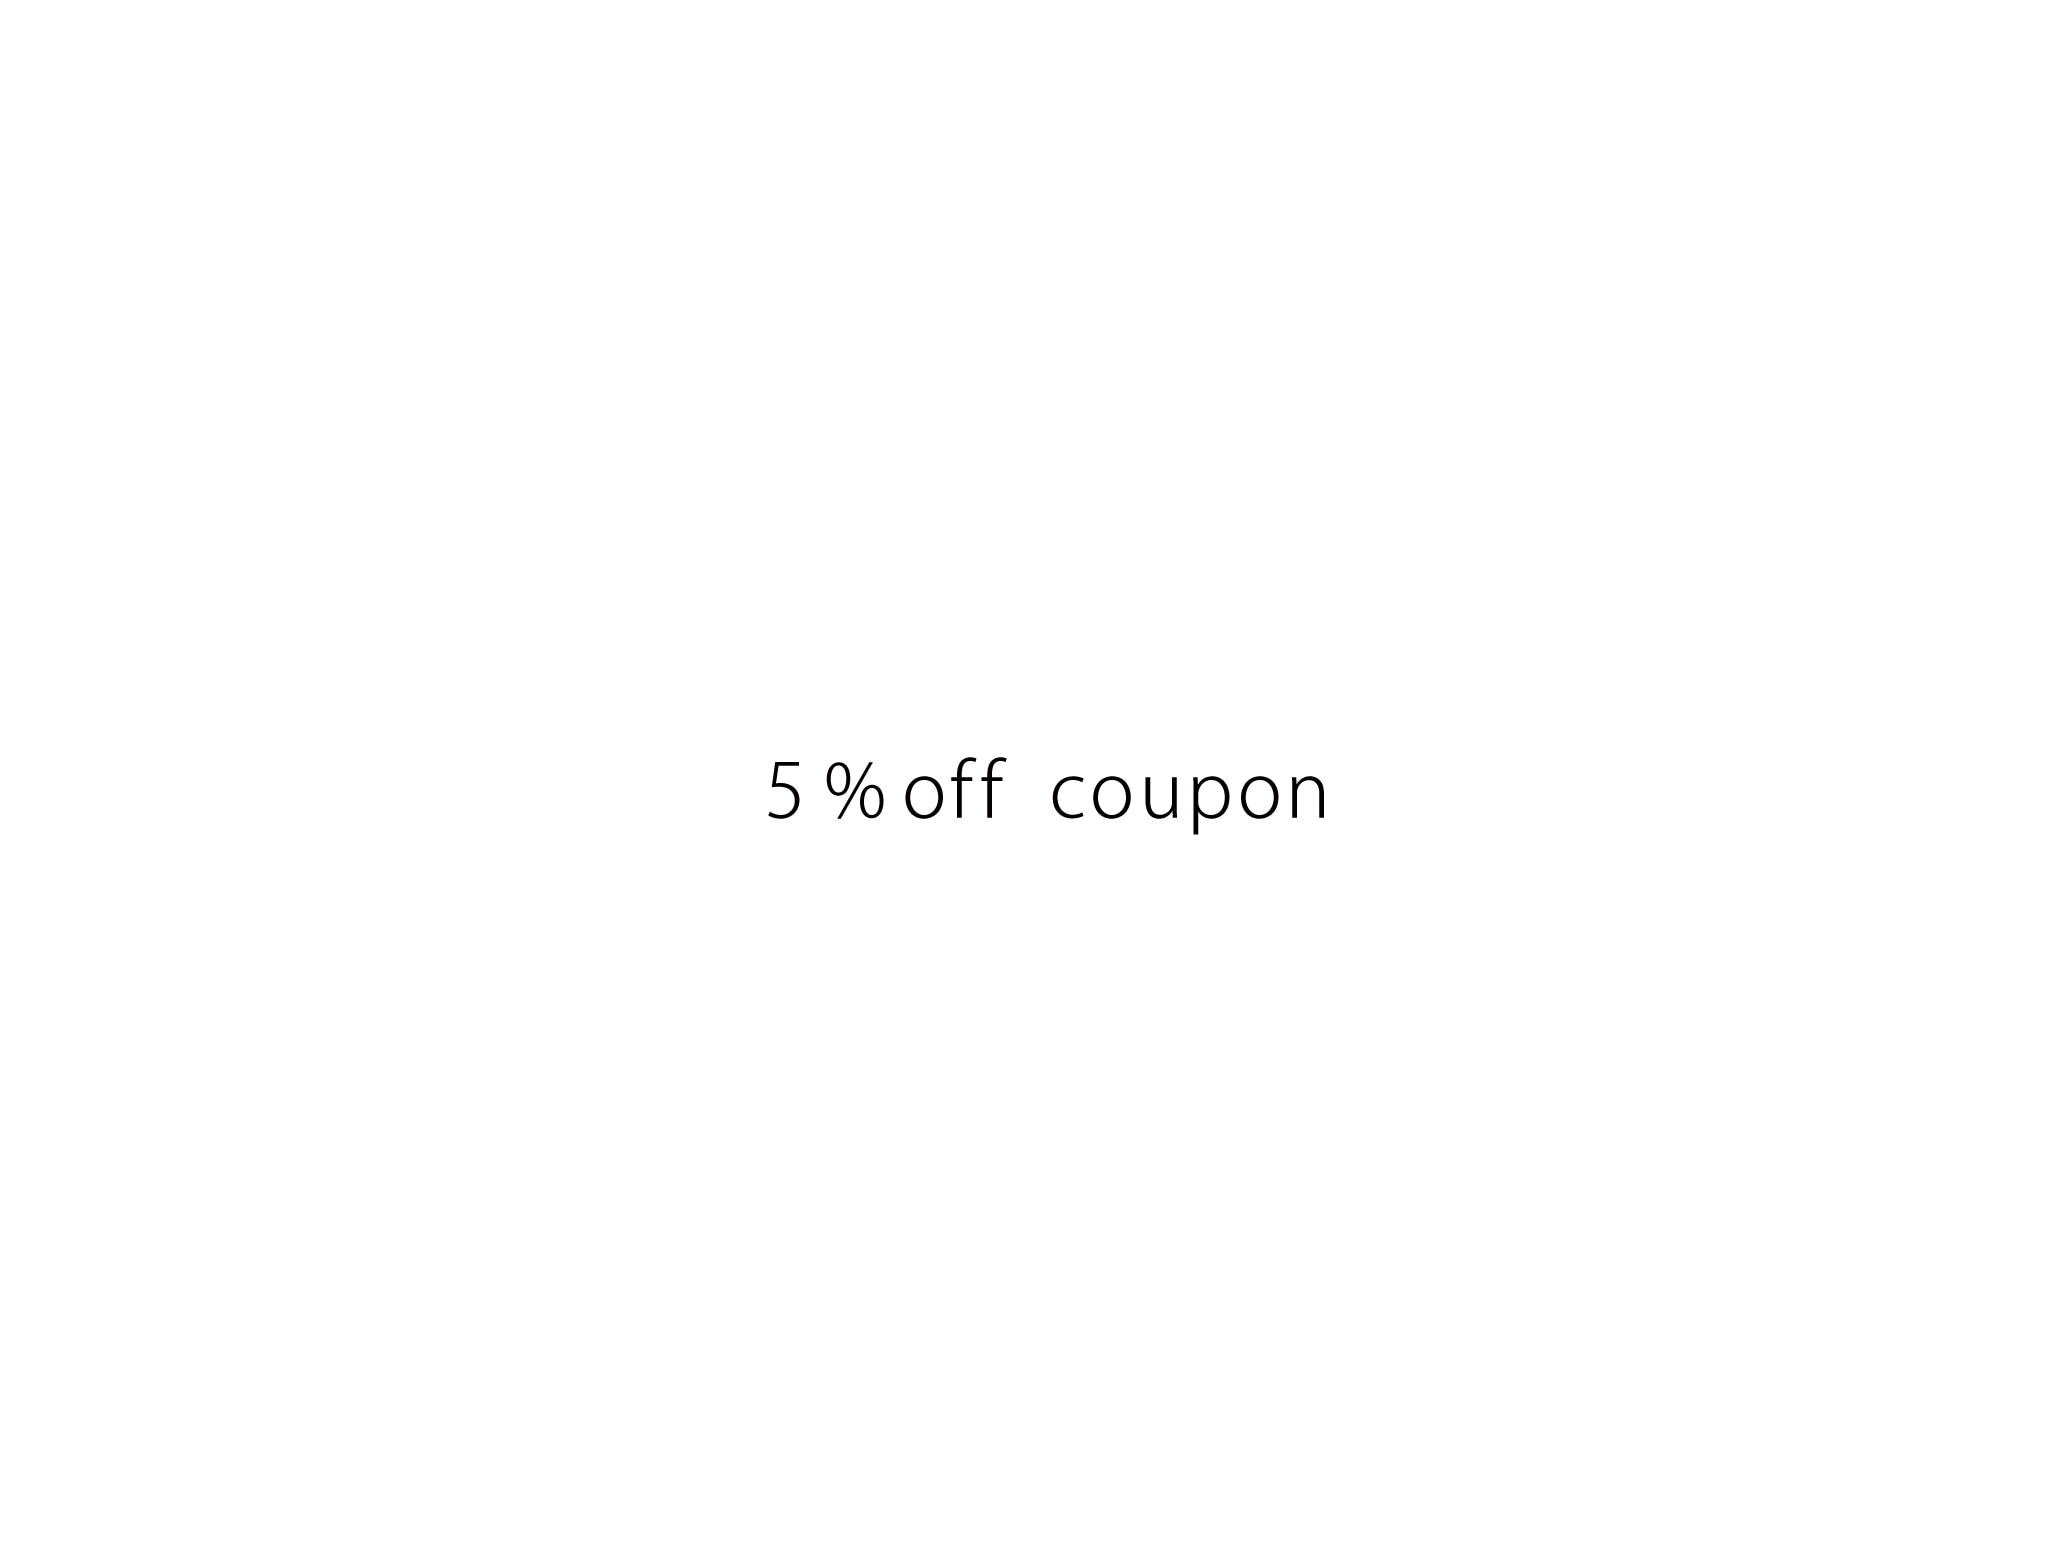 【 2021/10/15 -  10/17 】5%off クーポンプレゼント!